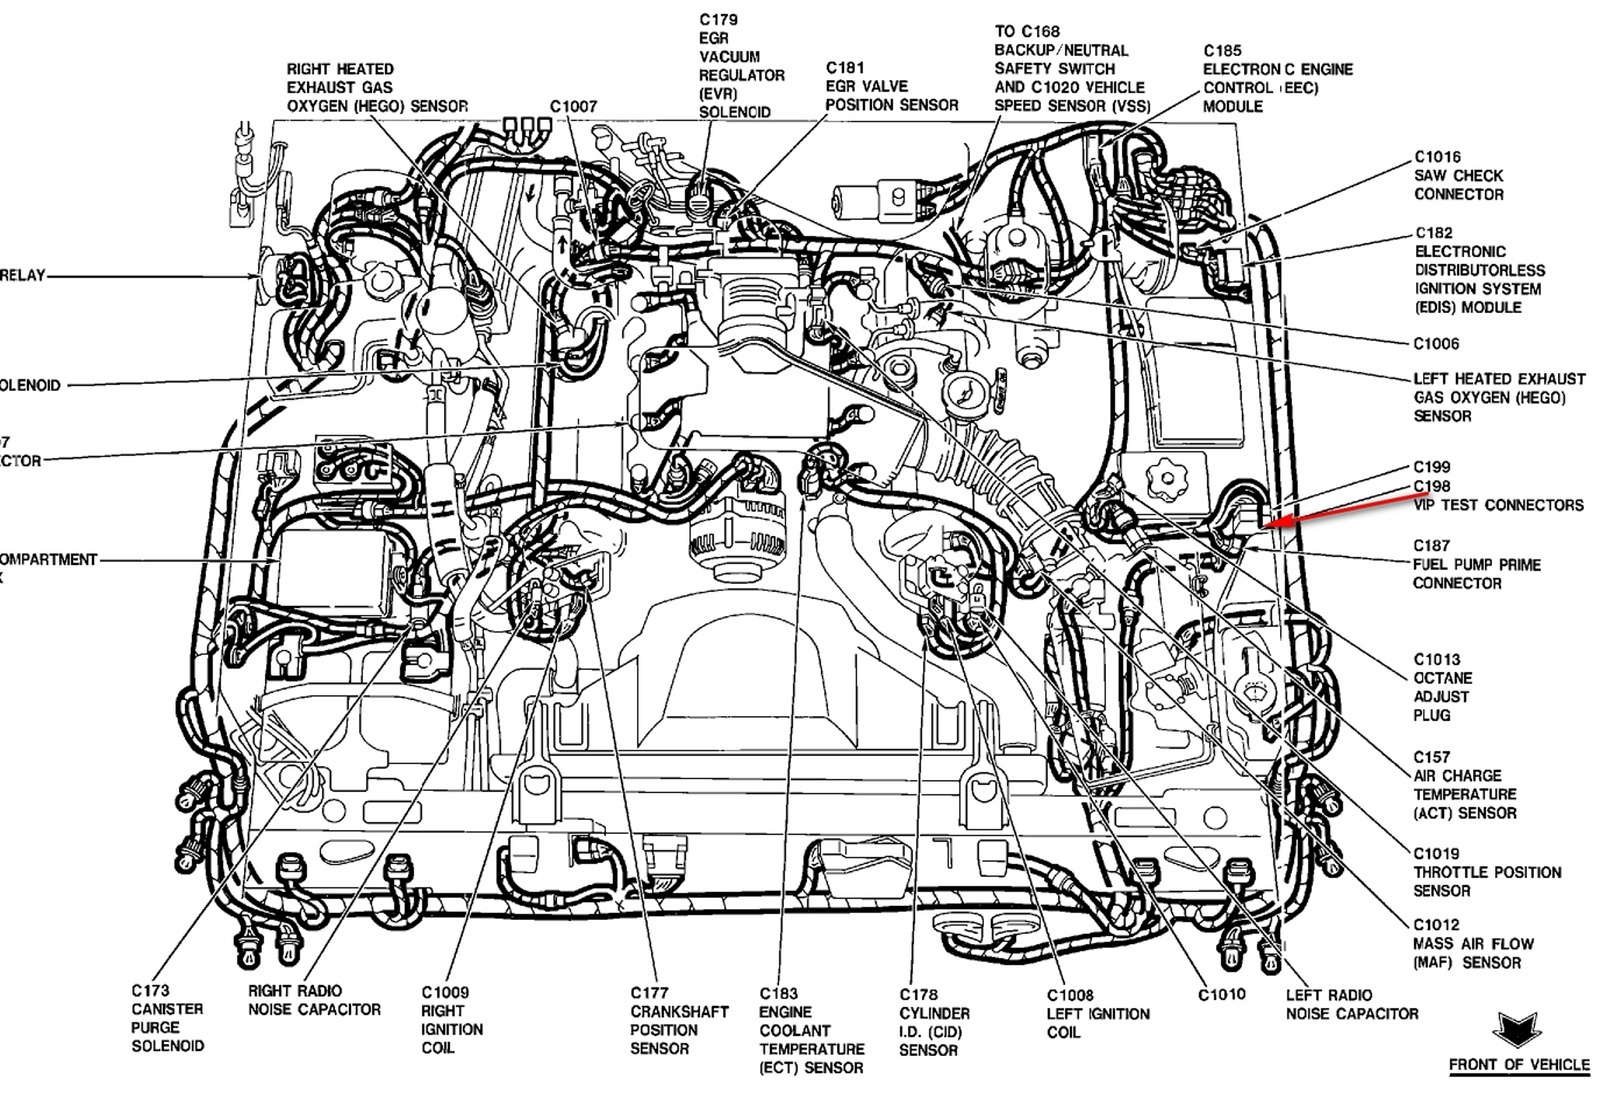 97 Cadillac Deville Pcm Location additionally Lincoln Navigator 5 4 2011 Specs And Images likewise Discussion T16272 ds549908 as well Discussion T16270 ds545905 besides Honda Accord88 Radiator Diagram And Schematics. on 1995 lincoln continental coolant temperature sensor location